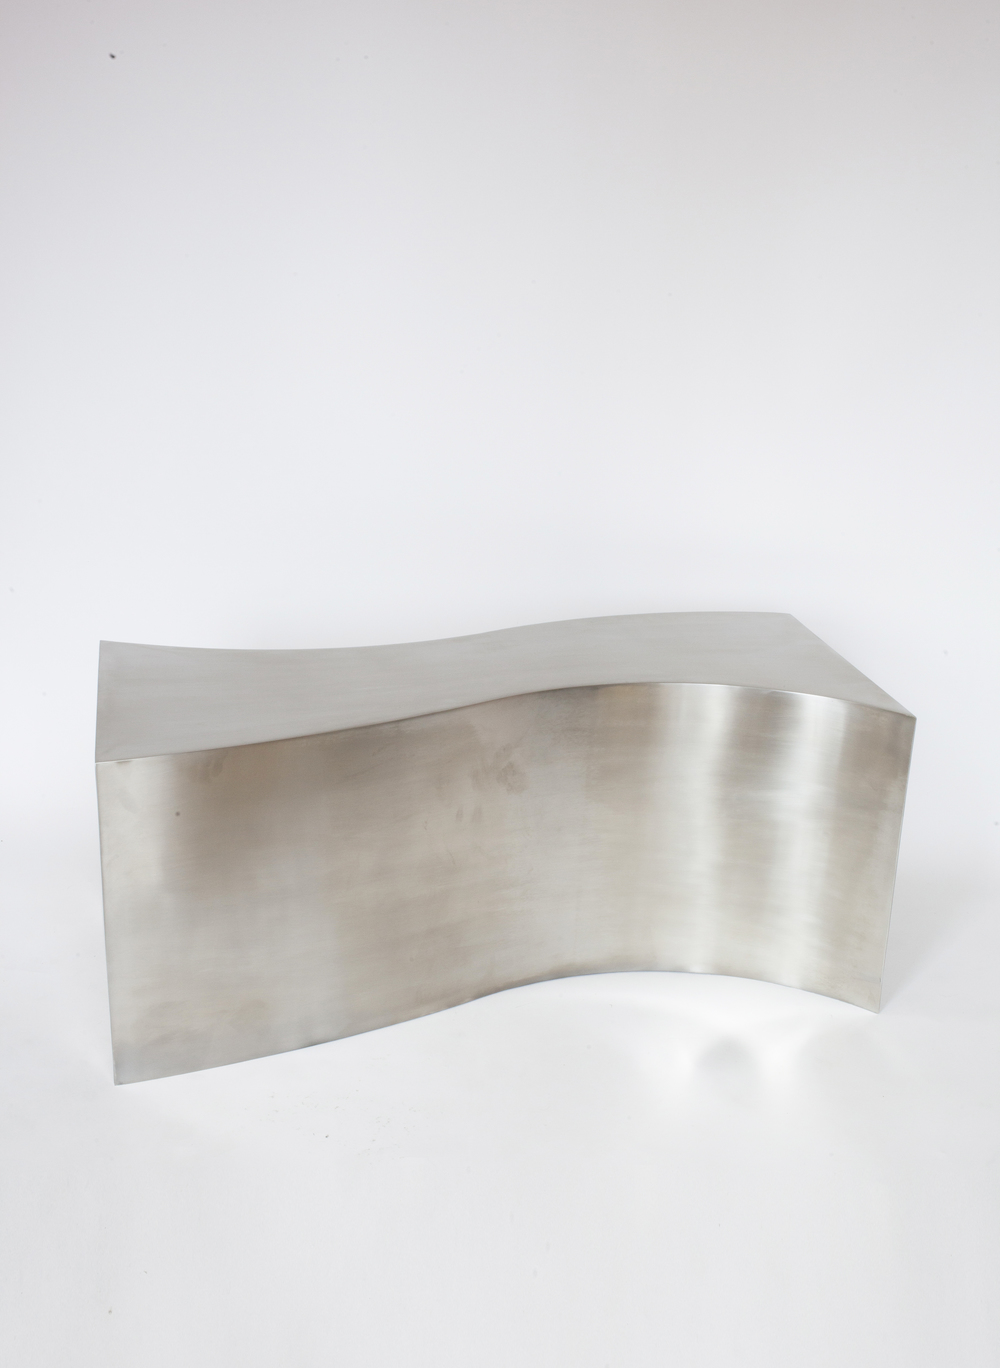 """FIT TABLE I RAW STEEL 42""""L x 19""""W x 18""""H PDF / 1STDIBS IN STOCK / MADE TO ORDER"""